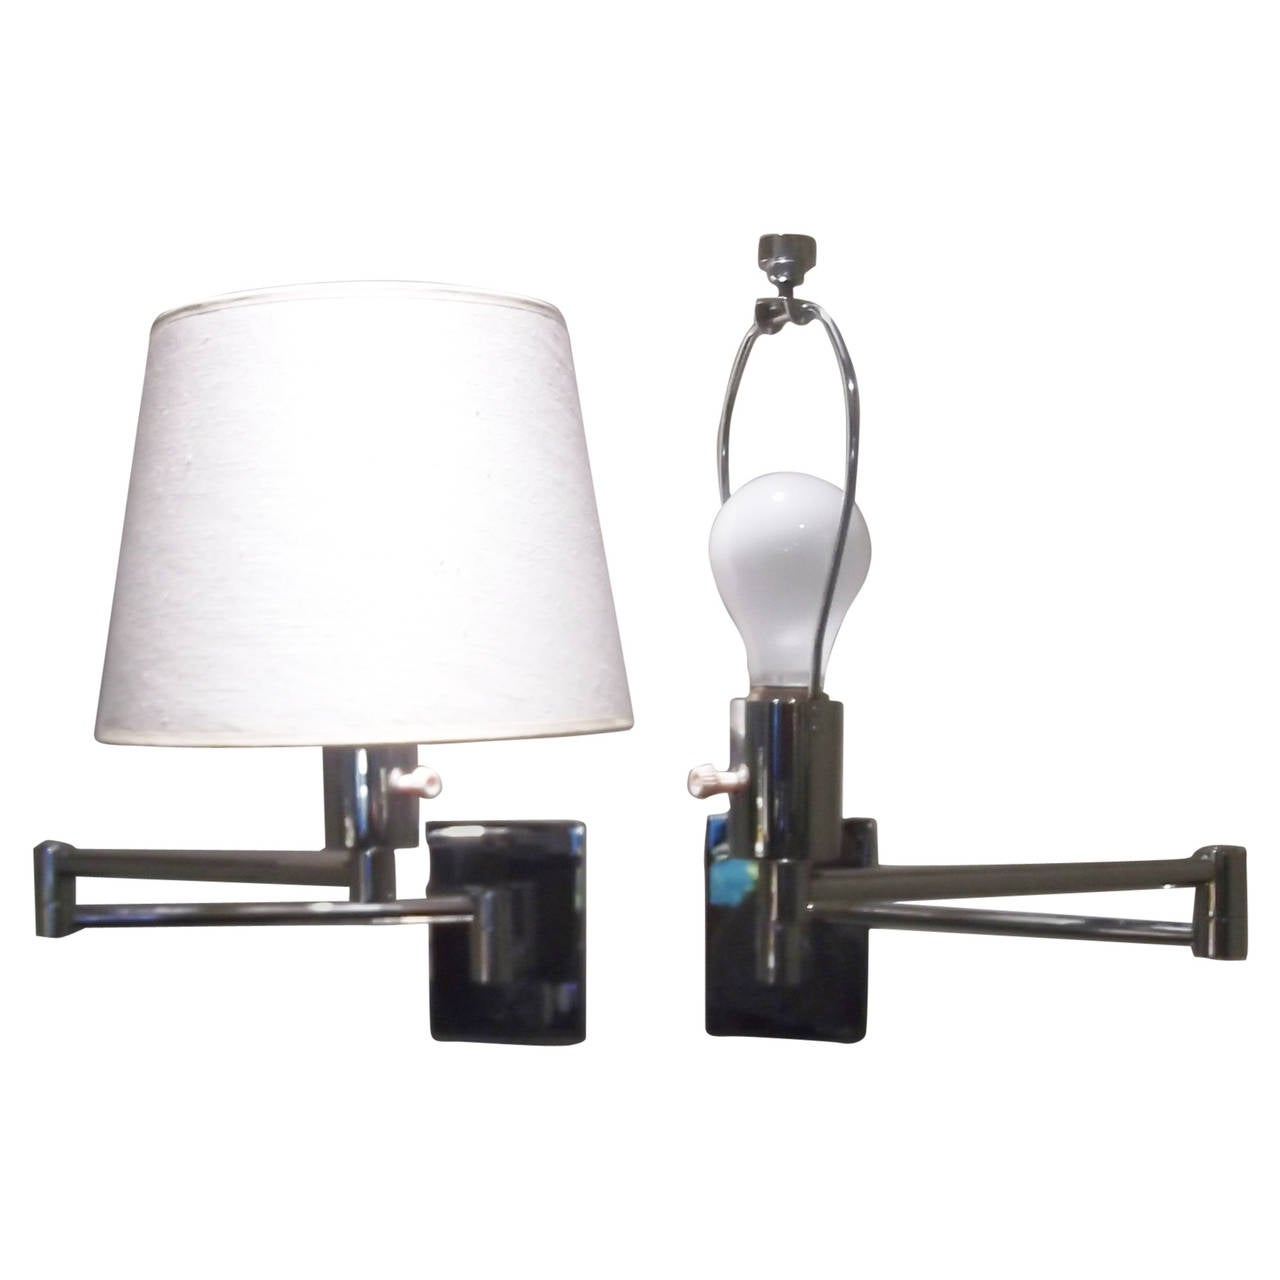 Pair of Chrome Mid Century Hansen Swing Arm Wall-Mounted Lamps For Sale at 1stdibs